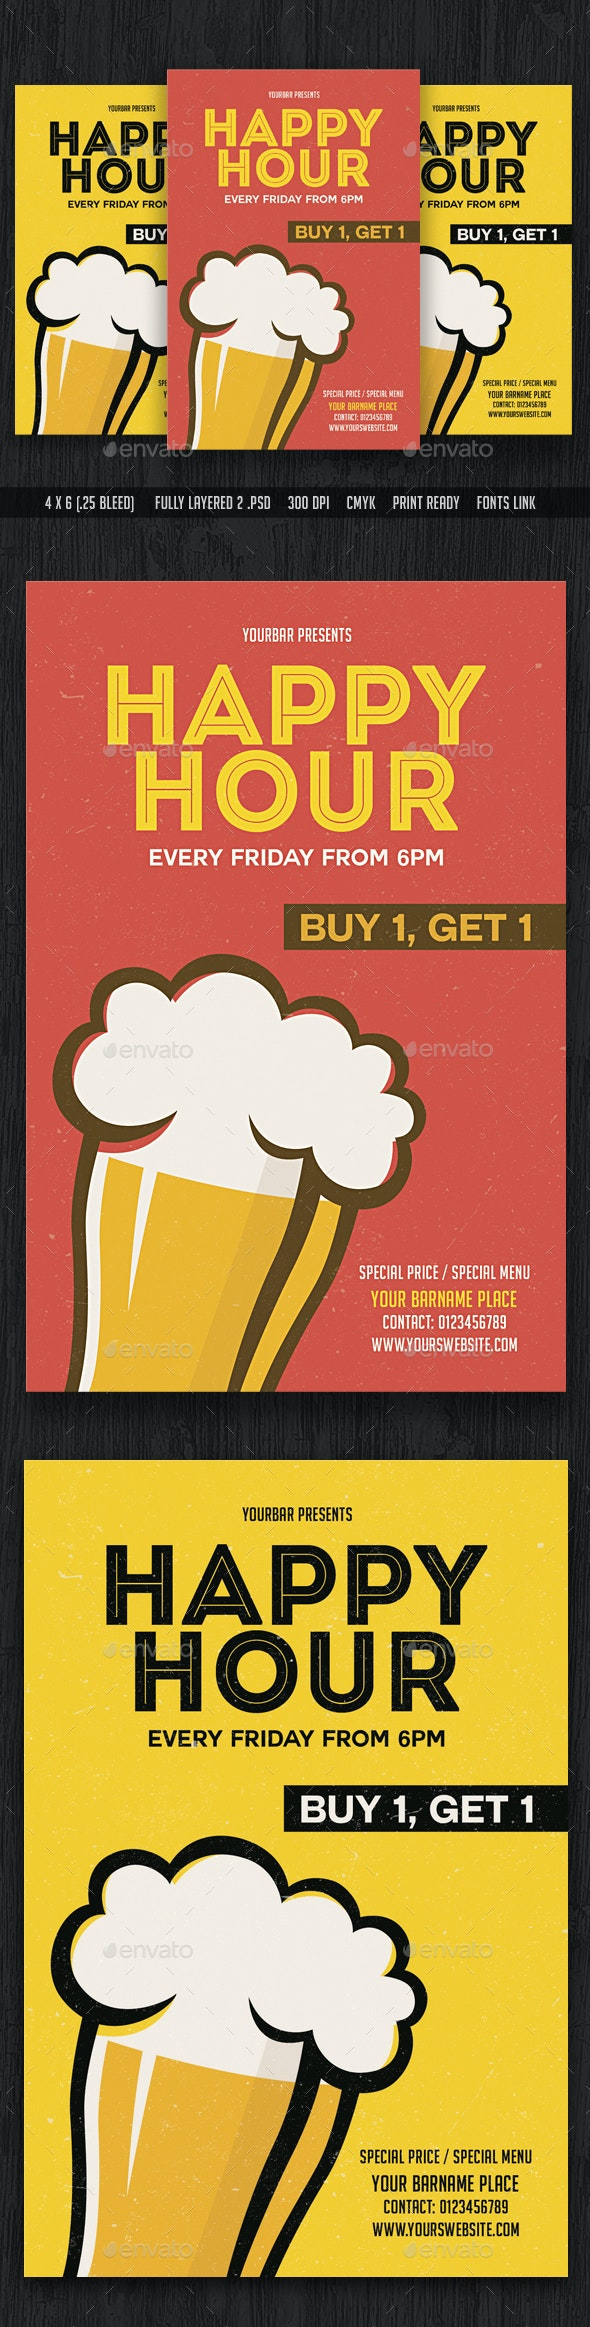 Happy Hour Flyer Template - Commerce Flyers